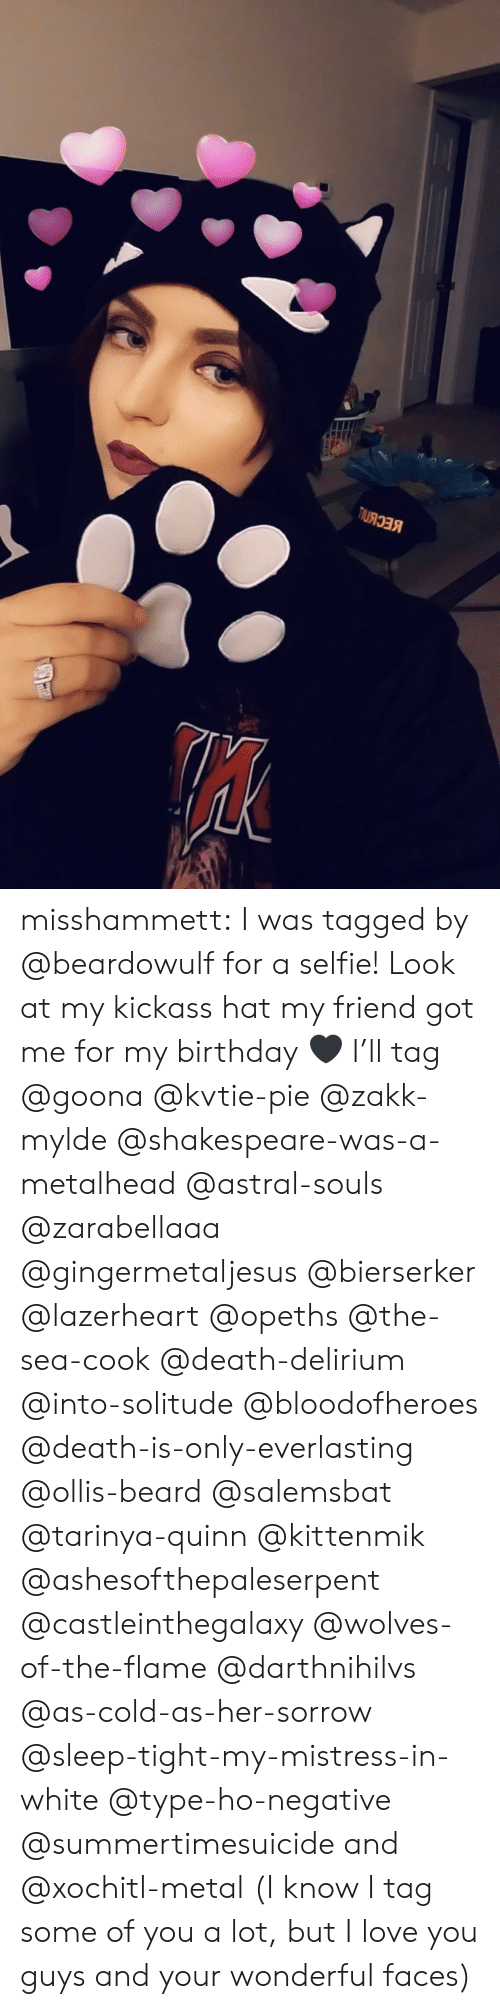 Beard, Birthday, and Love: misshammett:  I was tagged by @beardowulf for a selfie! Look at my kickass hat my friend got me for my birthday 🖤   I'll tag @goona @kvtie-pie @zakk-mylde @shakespeare-was-a-metalhead @astral-souls @zarabellaaa @gingermetaljesus @bierserker @lazerheart @opeths @the-sea-cook @death-delirium @into-solitude @bloodofheroes @death-is-only-everlasting @ollis-beard @salemsbat @tarinya-quinn @kittenmik @ashesofthepaleserpent @castleinthegalaxy @wolves-of-the-flame @darthnihilvs @as-cold-as-her-sorrow @sleep-tight-my-mistress-in-white @type-ho-negative @summertimesuicide and @xochitl-metal  (I know I tag some of you a lot, but I love you guys and your wonderful faces)